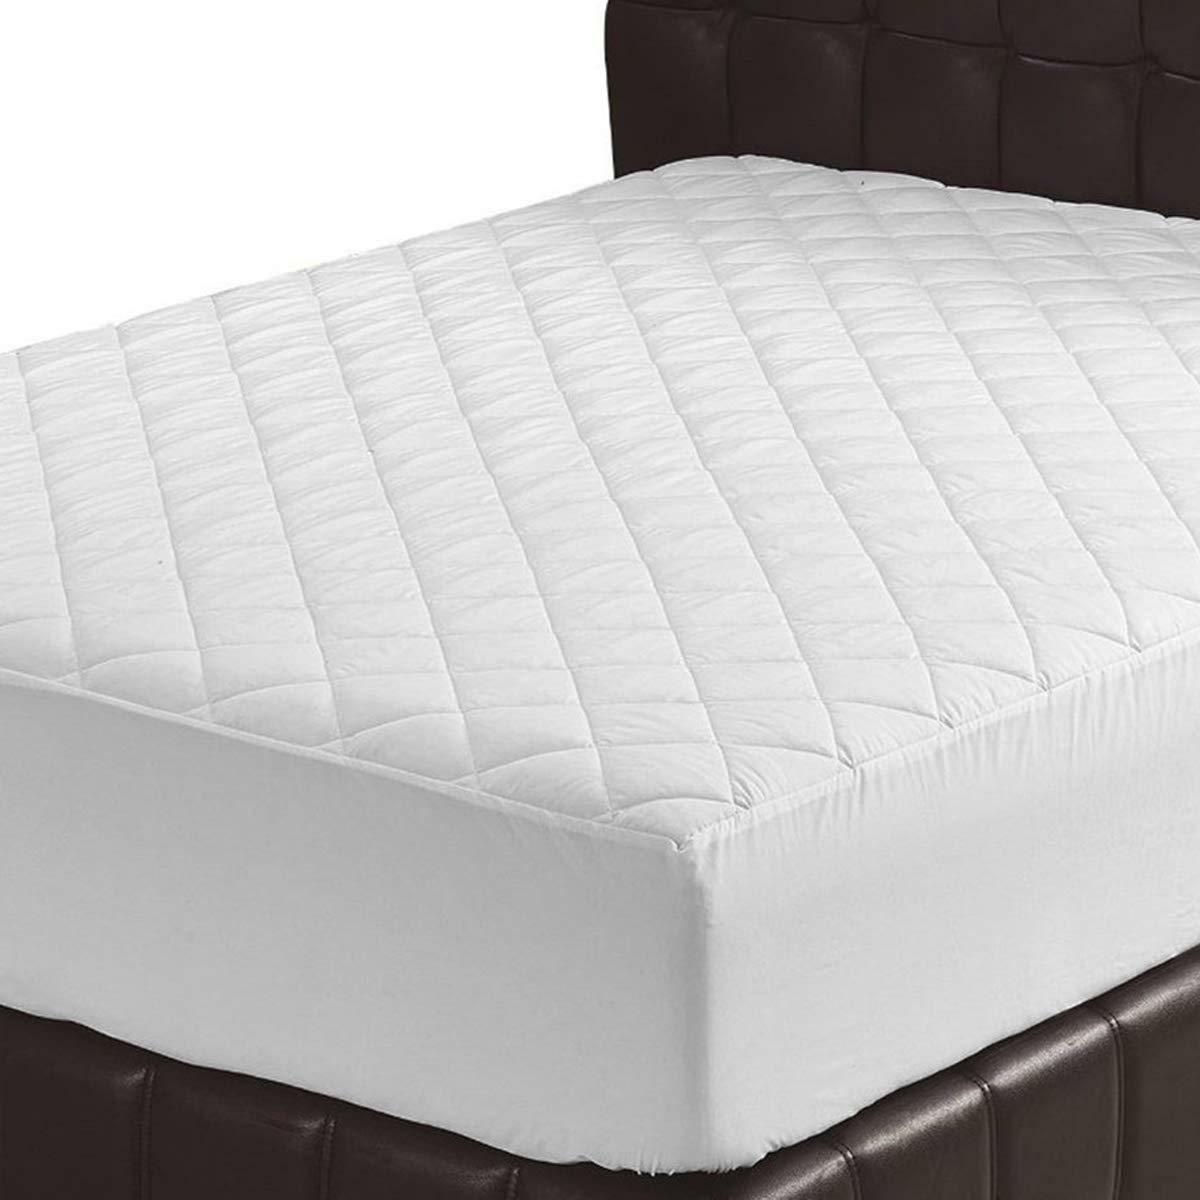 16Inch Memory Foam Topper Mattress Cover Twin Size Bed Pad M